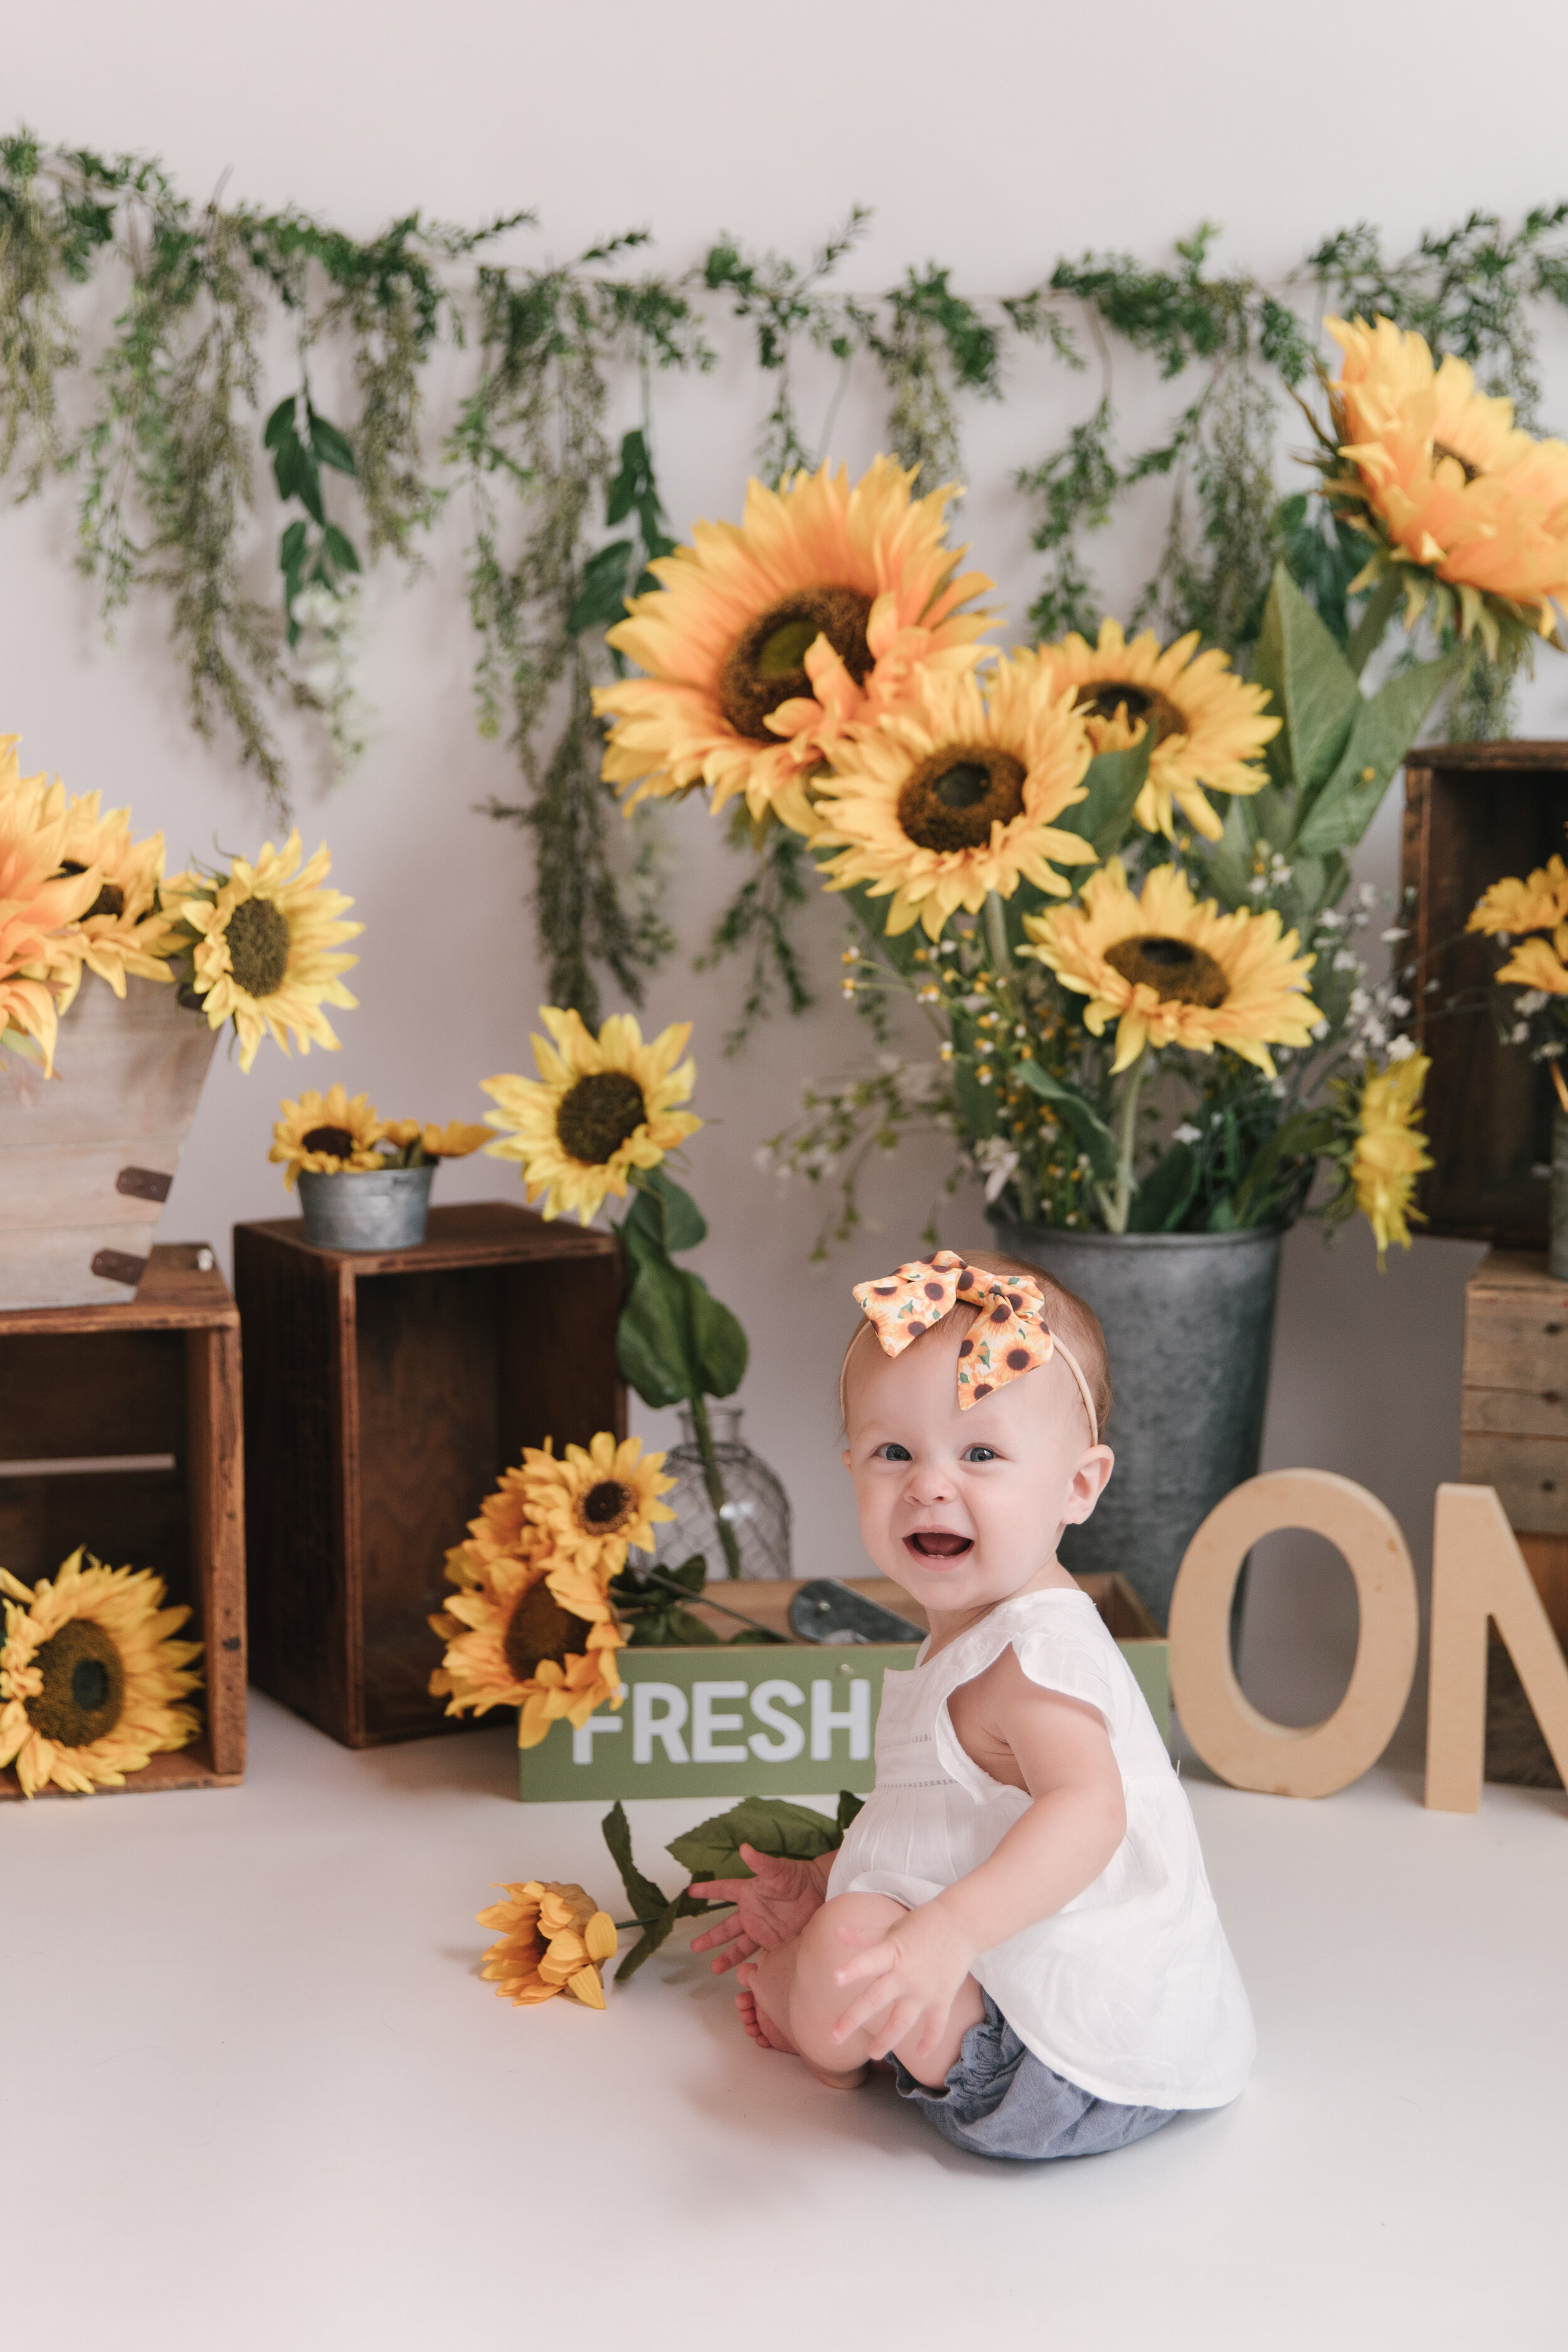 Sunflower_Themed_First_Birthday_Studio_Session_Smash_Session_Little_Girl_Turns_One_Ombre Smash_Cake_with_Christie_Leigh_Photo_Cortland_Ohio-1.JPG